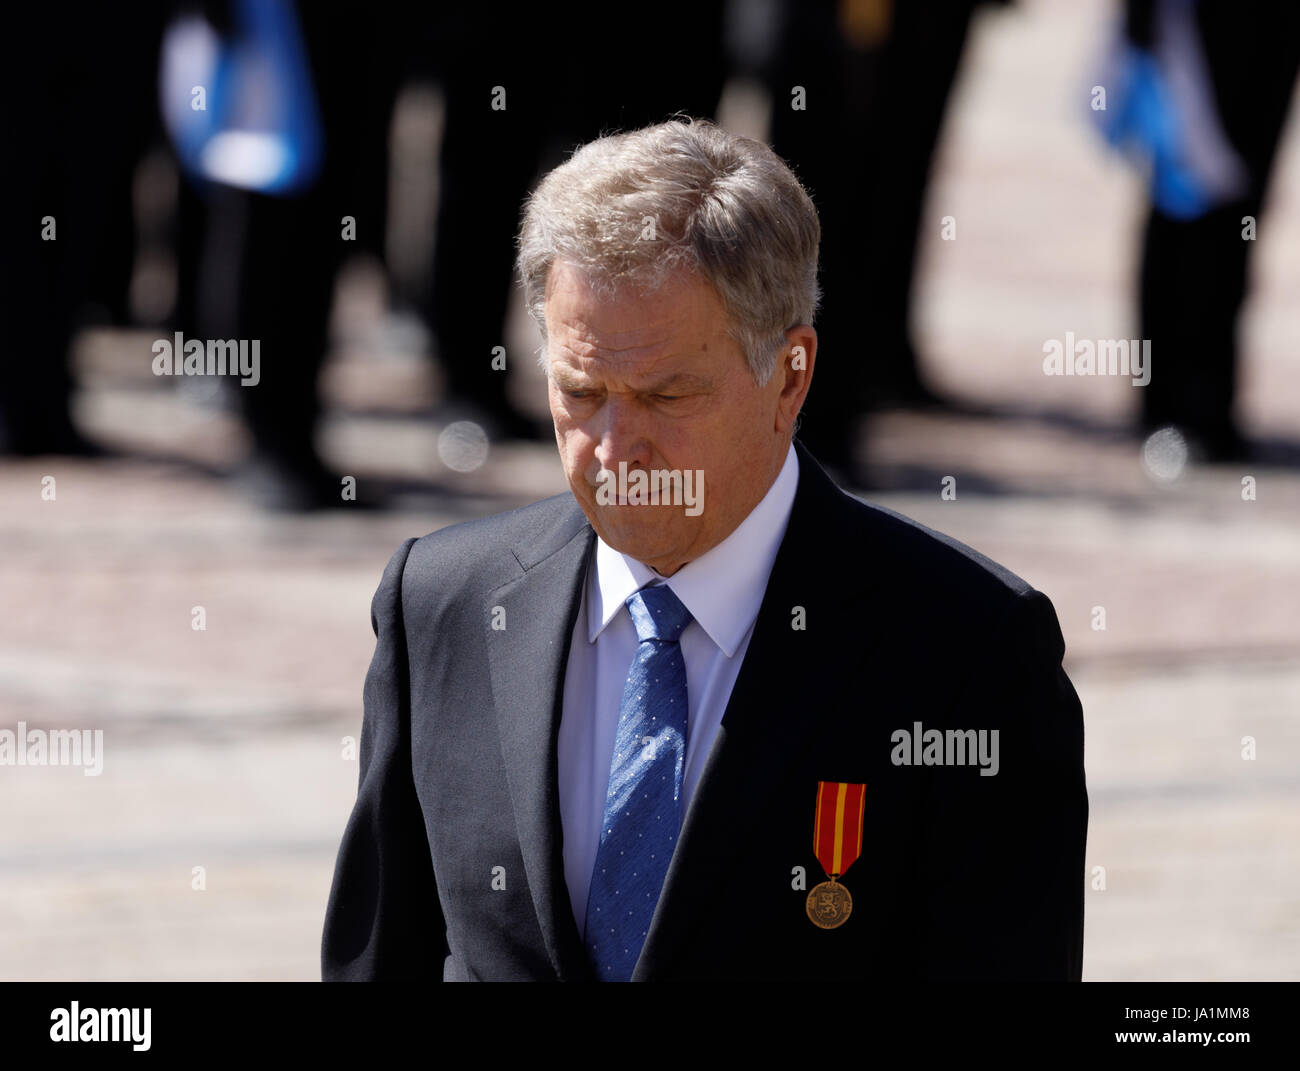 Helsinki, Finland. 4th June, 2017. Sauli Niinistö is the 12th President of the Republic of Finland. Credit: - Stock Image